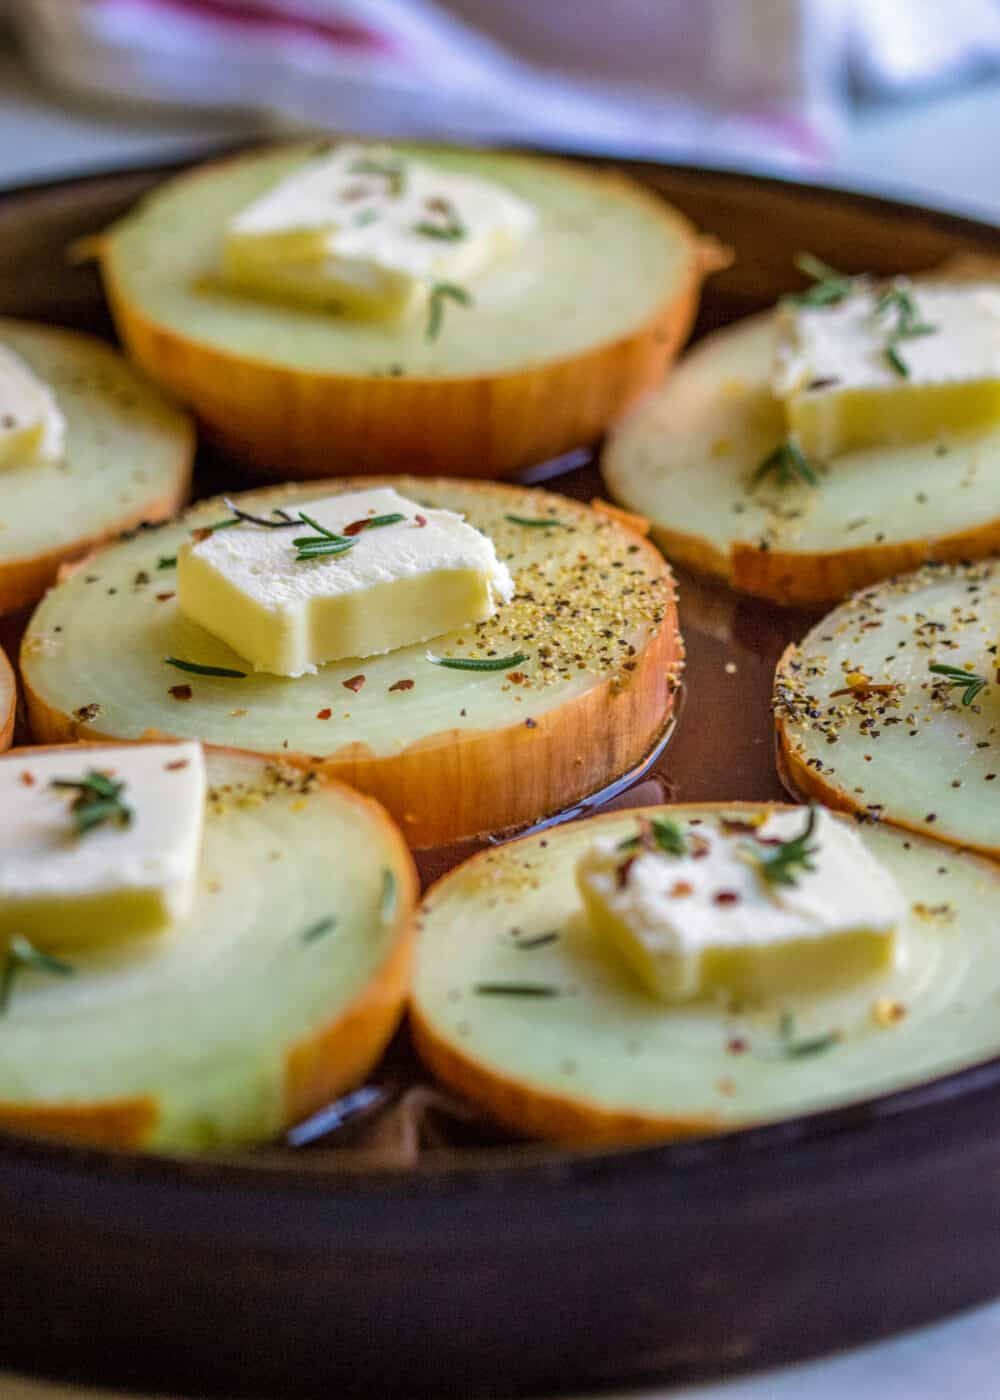 close up: raw vegetable slices in baking dish- pats of butter on top